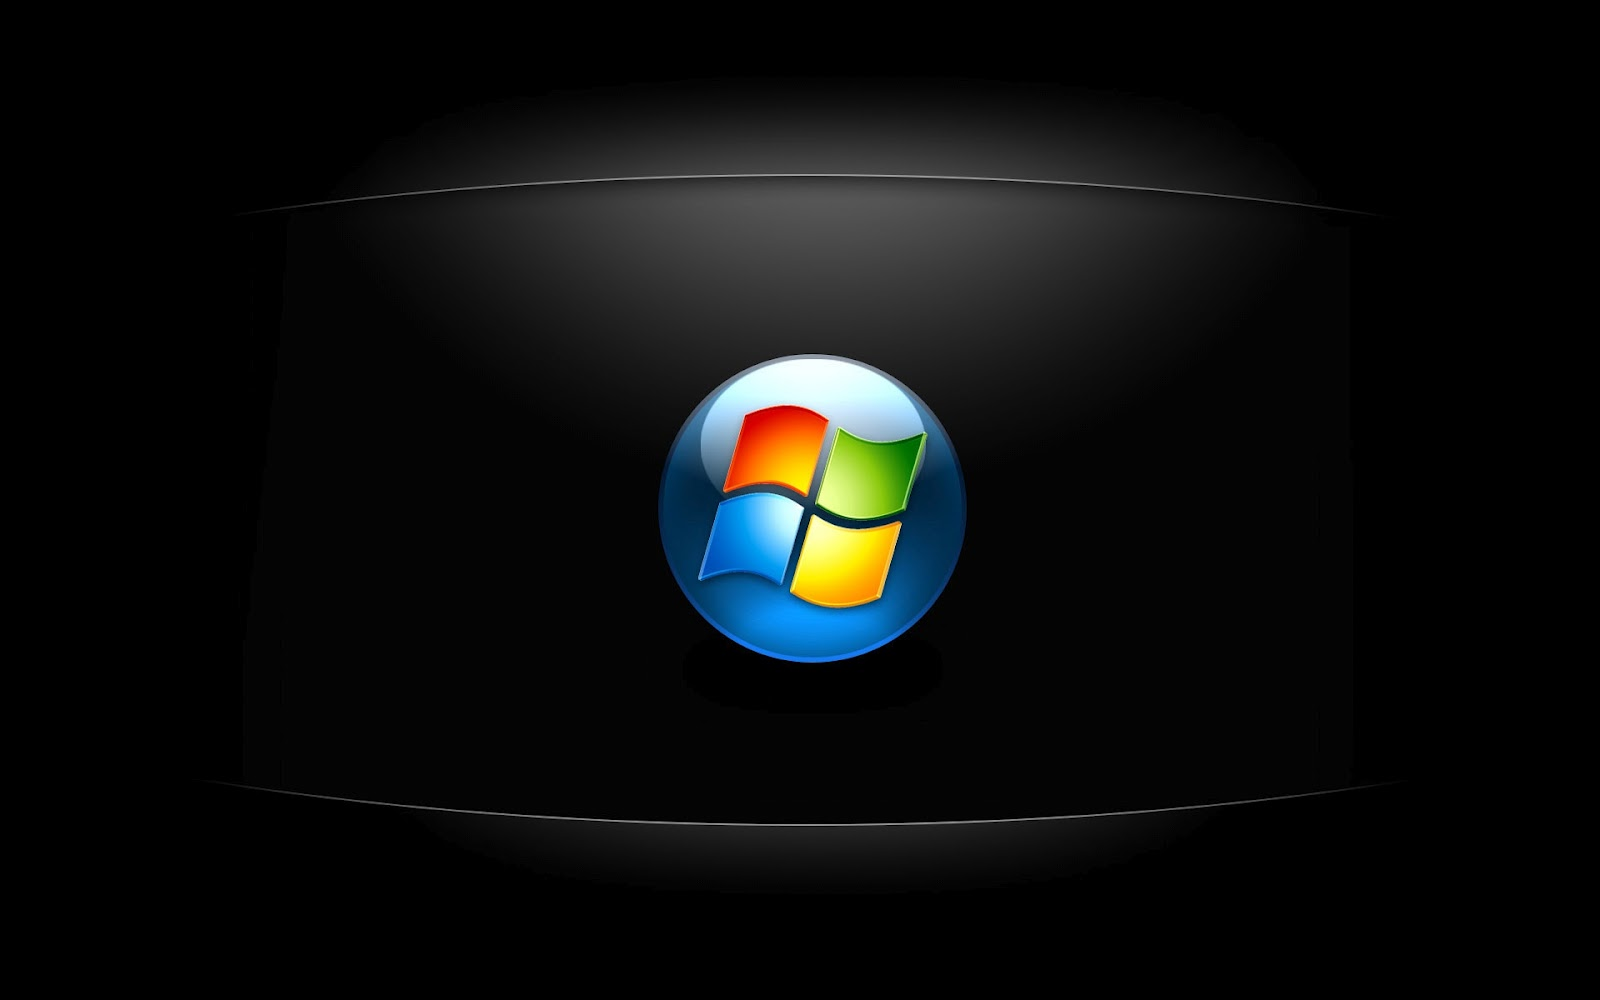 window 7 hd wallpaper - wallpapersafari